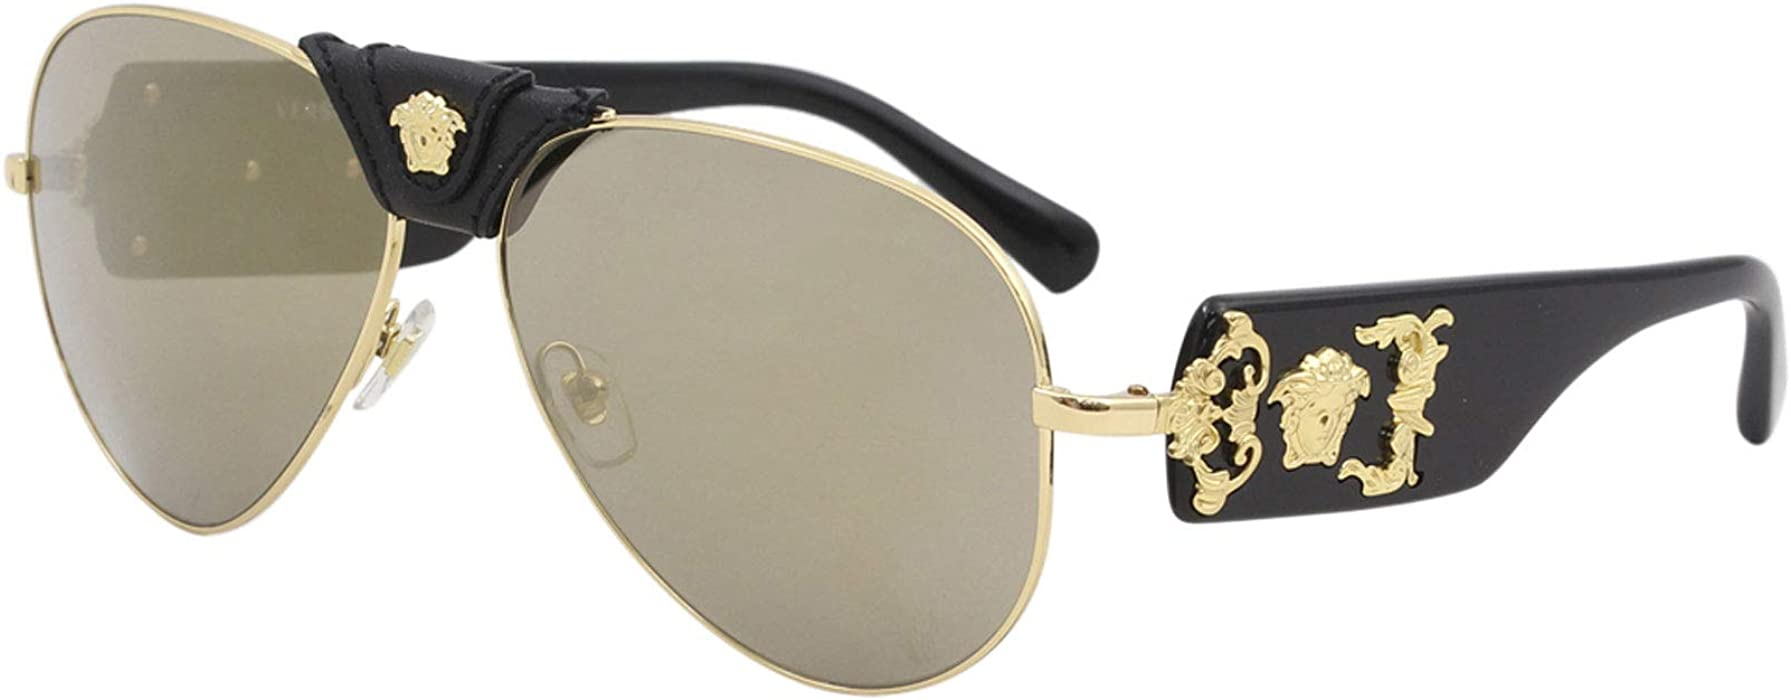 97f31f9c8a87 Amazon.com  Versace Mens Sunglasses Gold Brown Metal - Non-Polarized ...